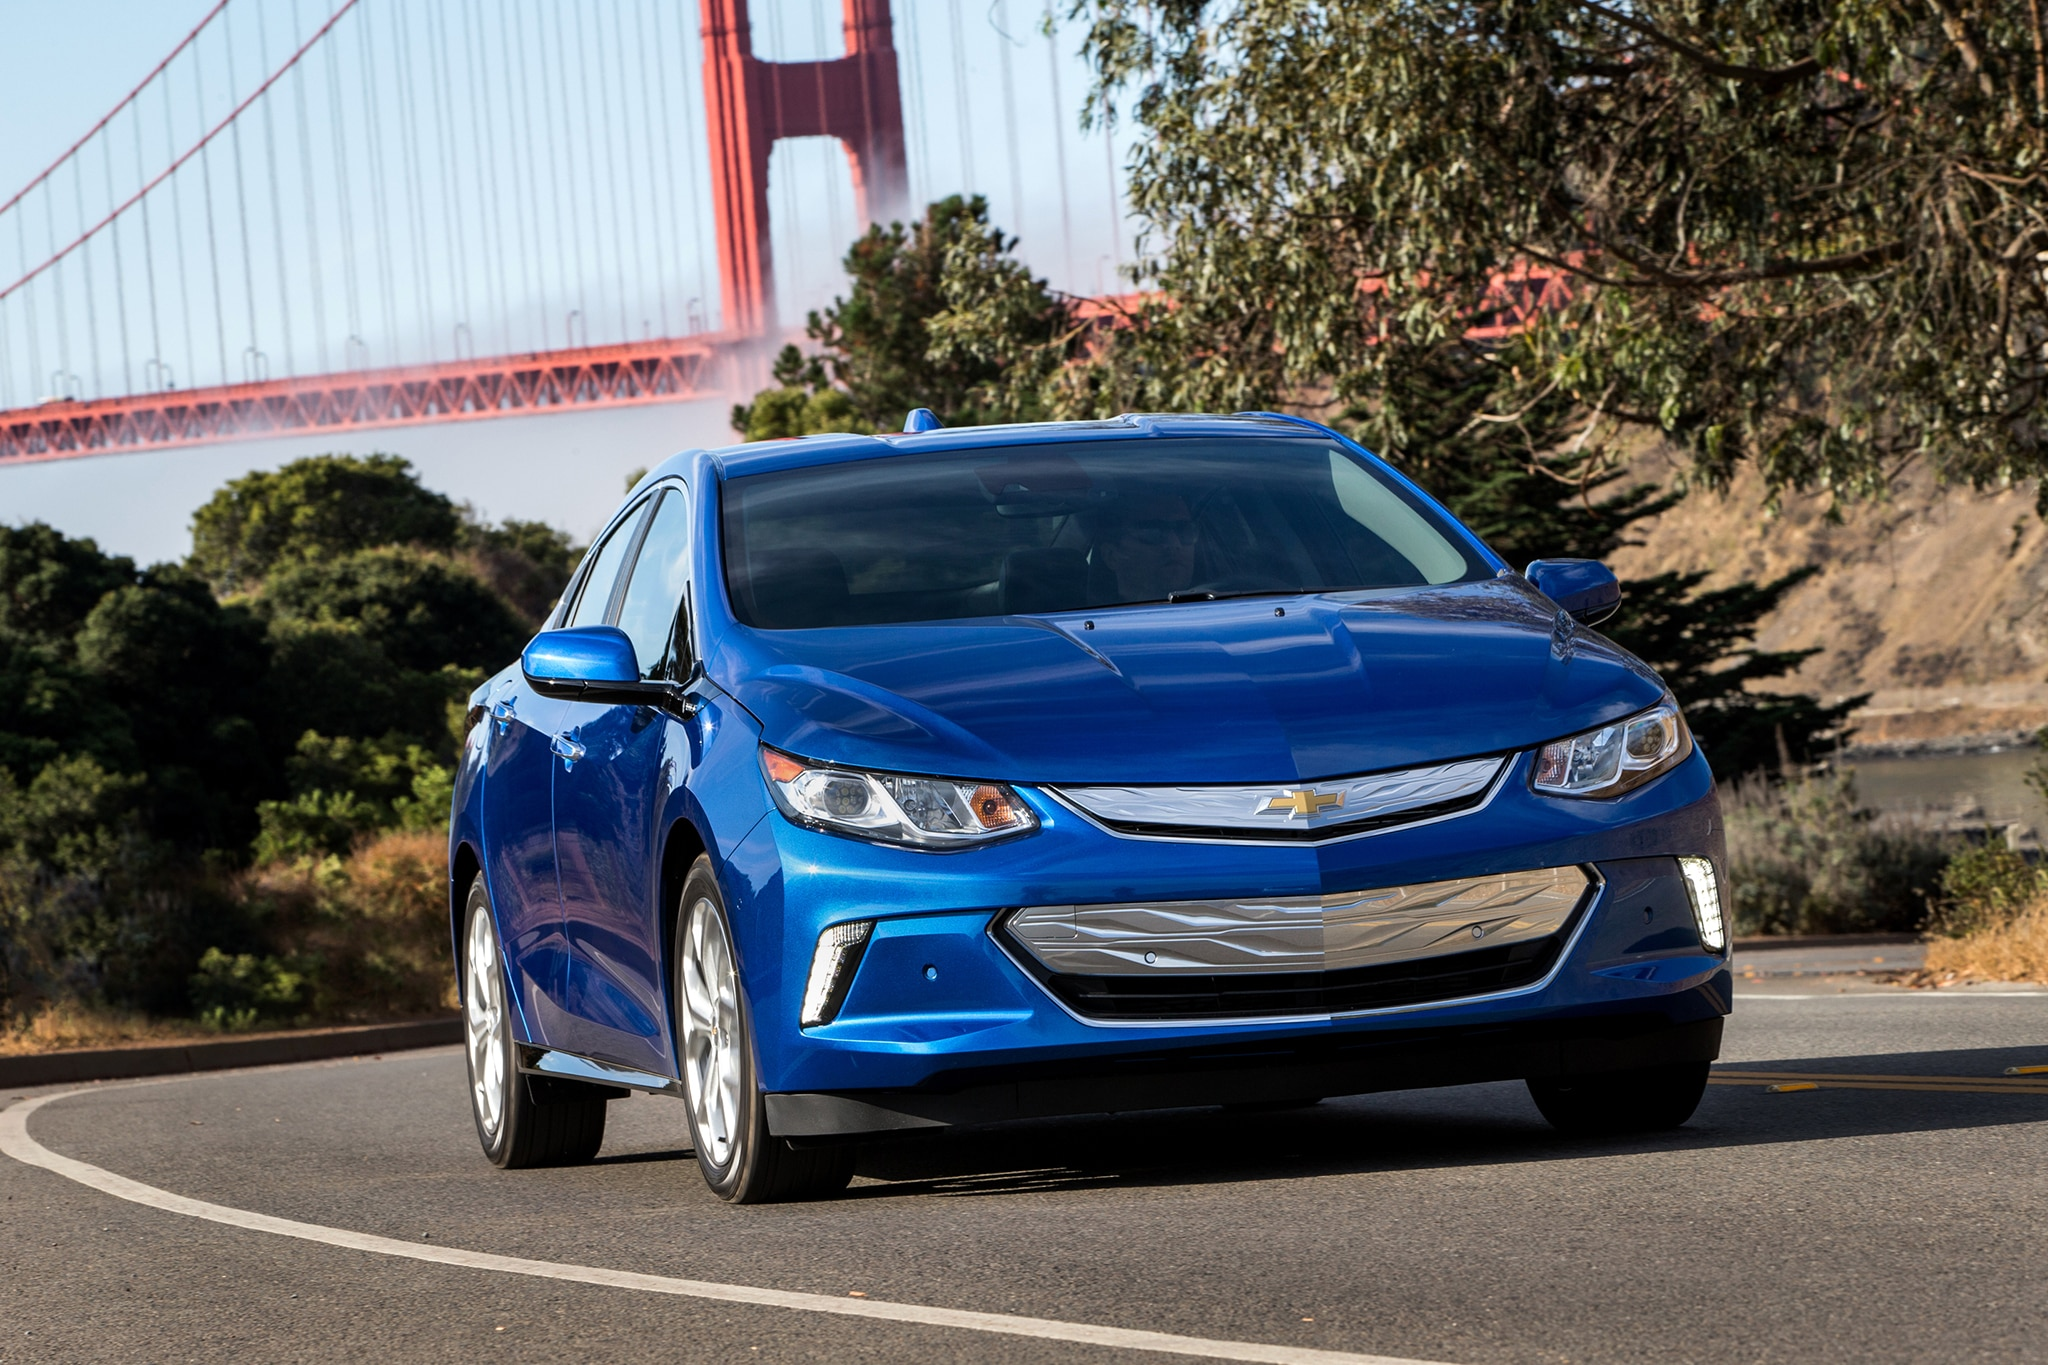 2017 Chevrolet Volt Front View In Motion